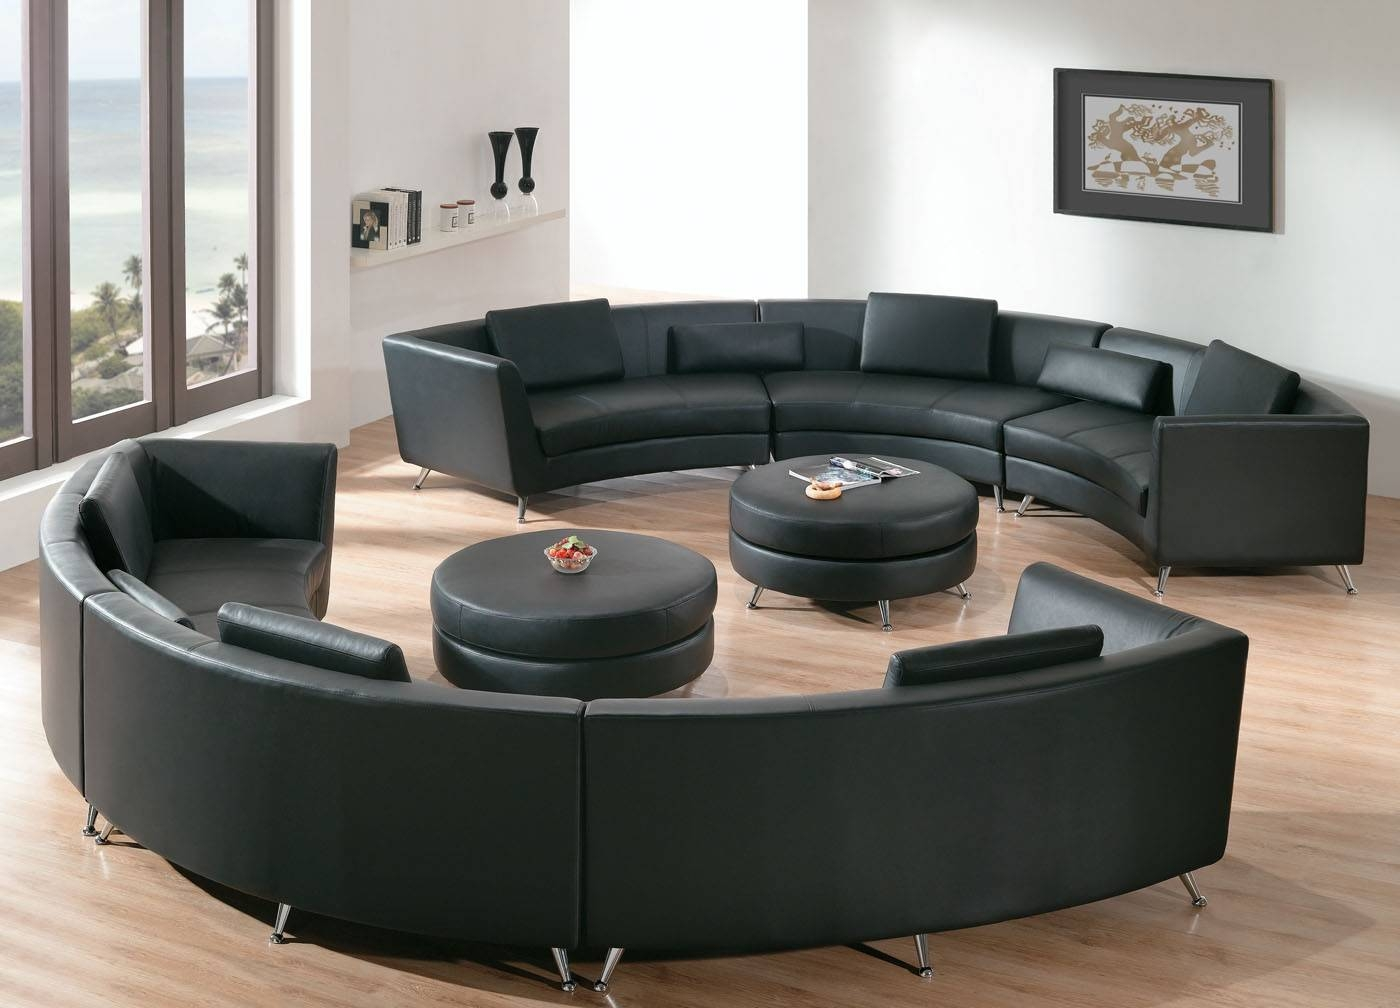 Round Sectional Sofa For Unique Seating Alternative – Traba Homes Regarding Circular Sectional Sofa (View 22 of 30)